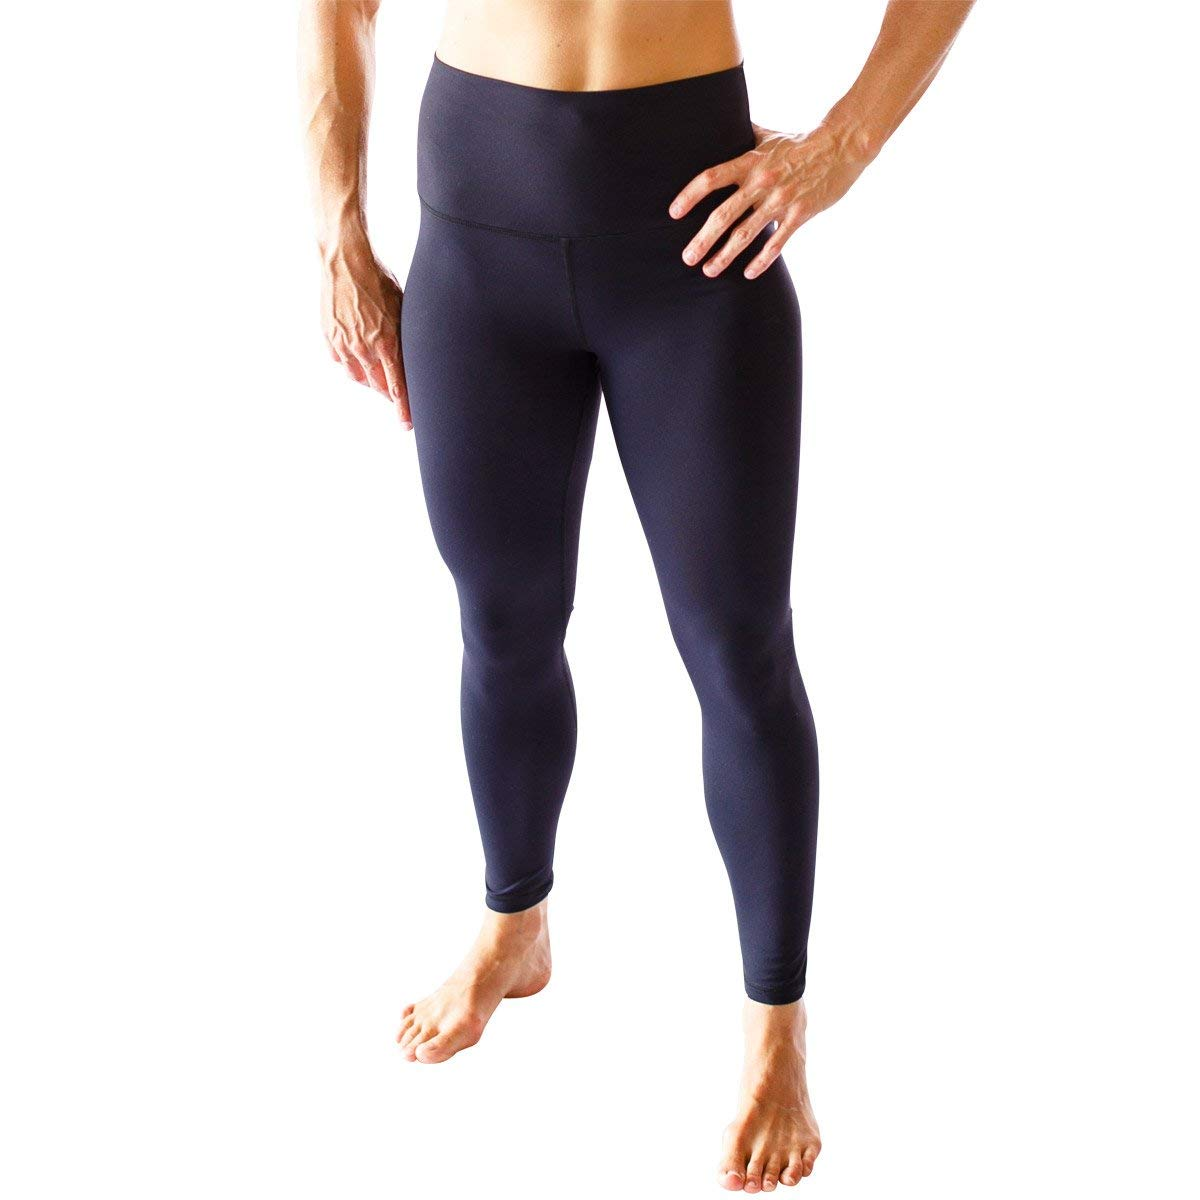 4df8e1255010e Lift Yourself Up 7/8 Leggings (Black) at Amazon Women's Clothing store: